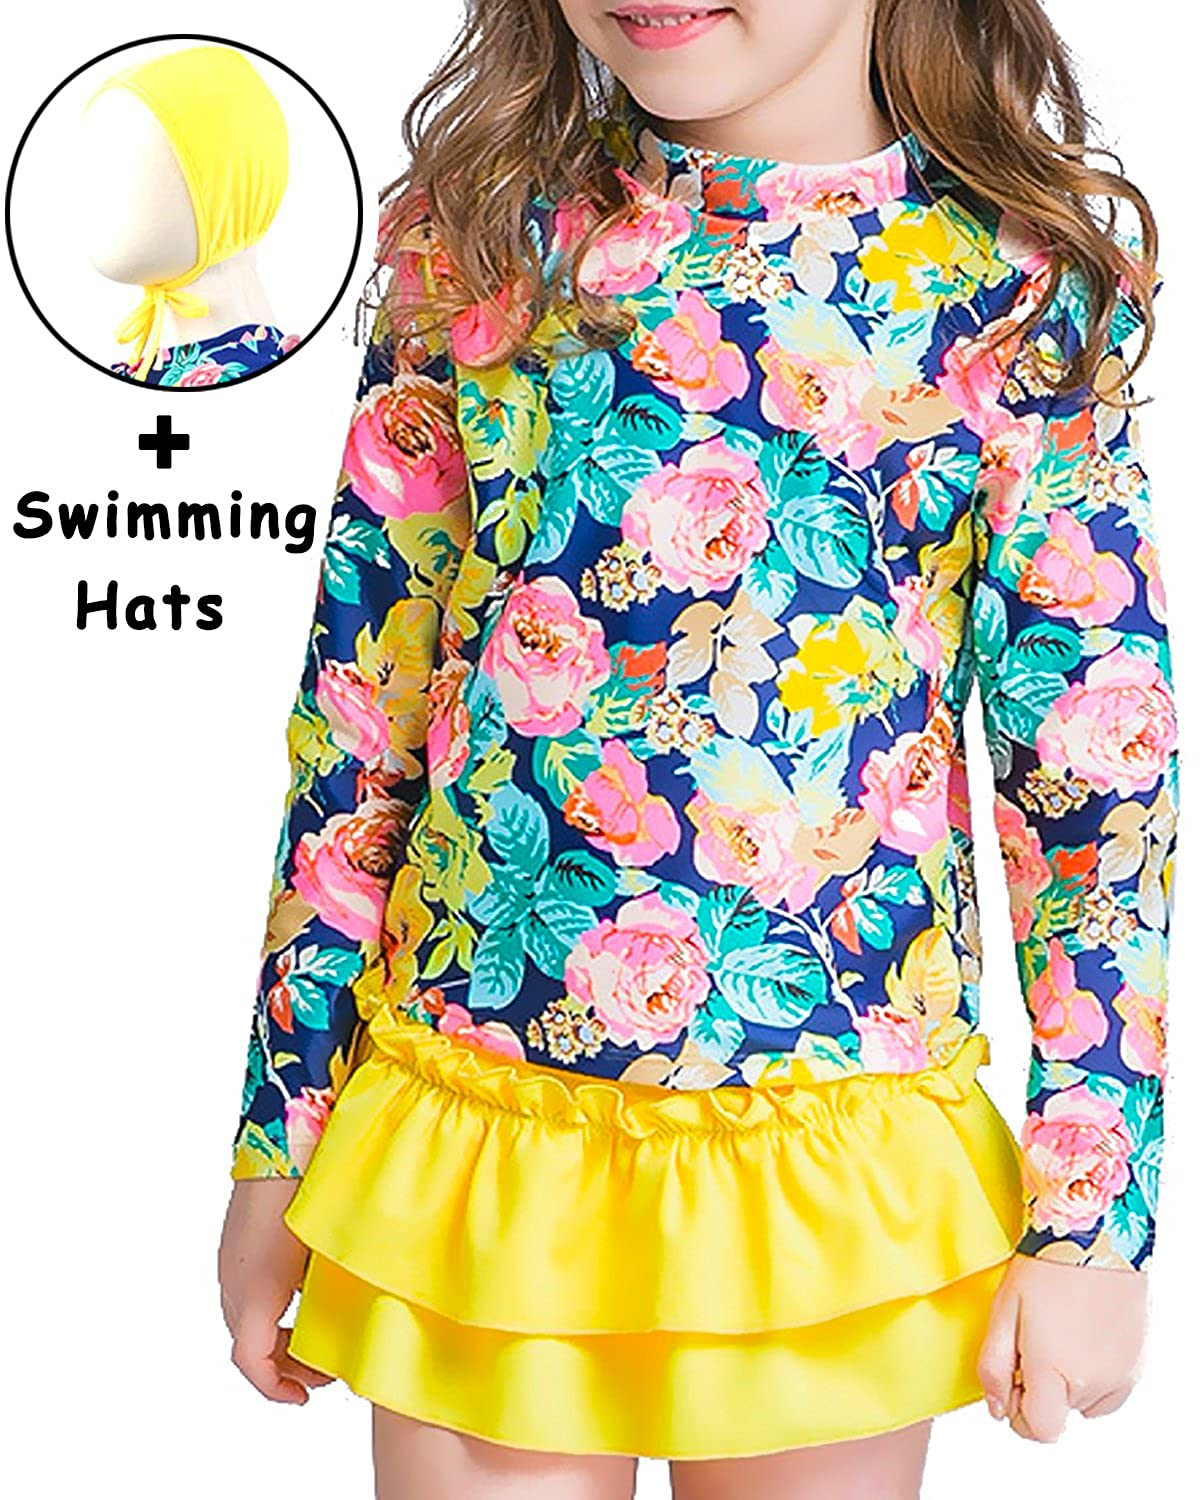 a38071001d Package Included – 1* Rash Guard Top + 1* Rash Guard Bottom + 1* Swimming  Hats. ????Our Size - These girl rash guard has 2 series and from 3-14 years  old ...